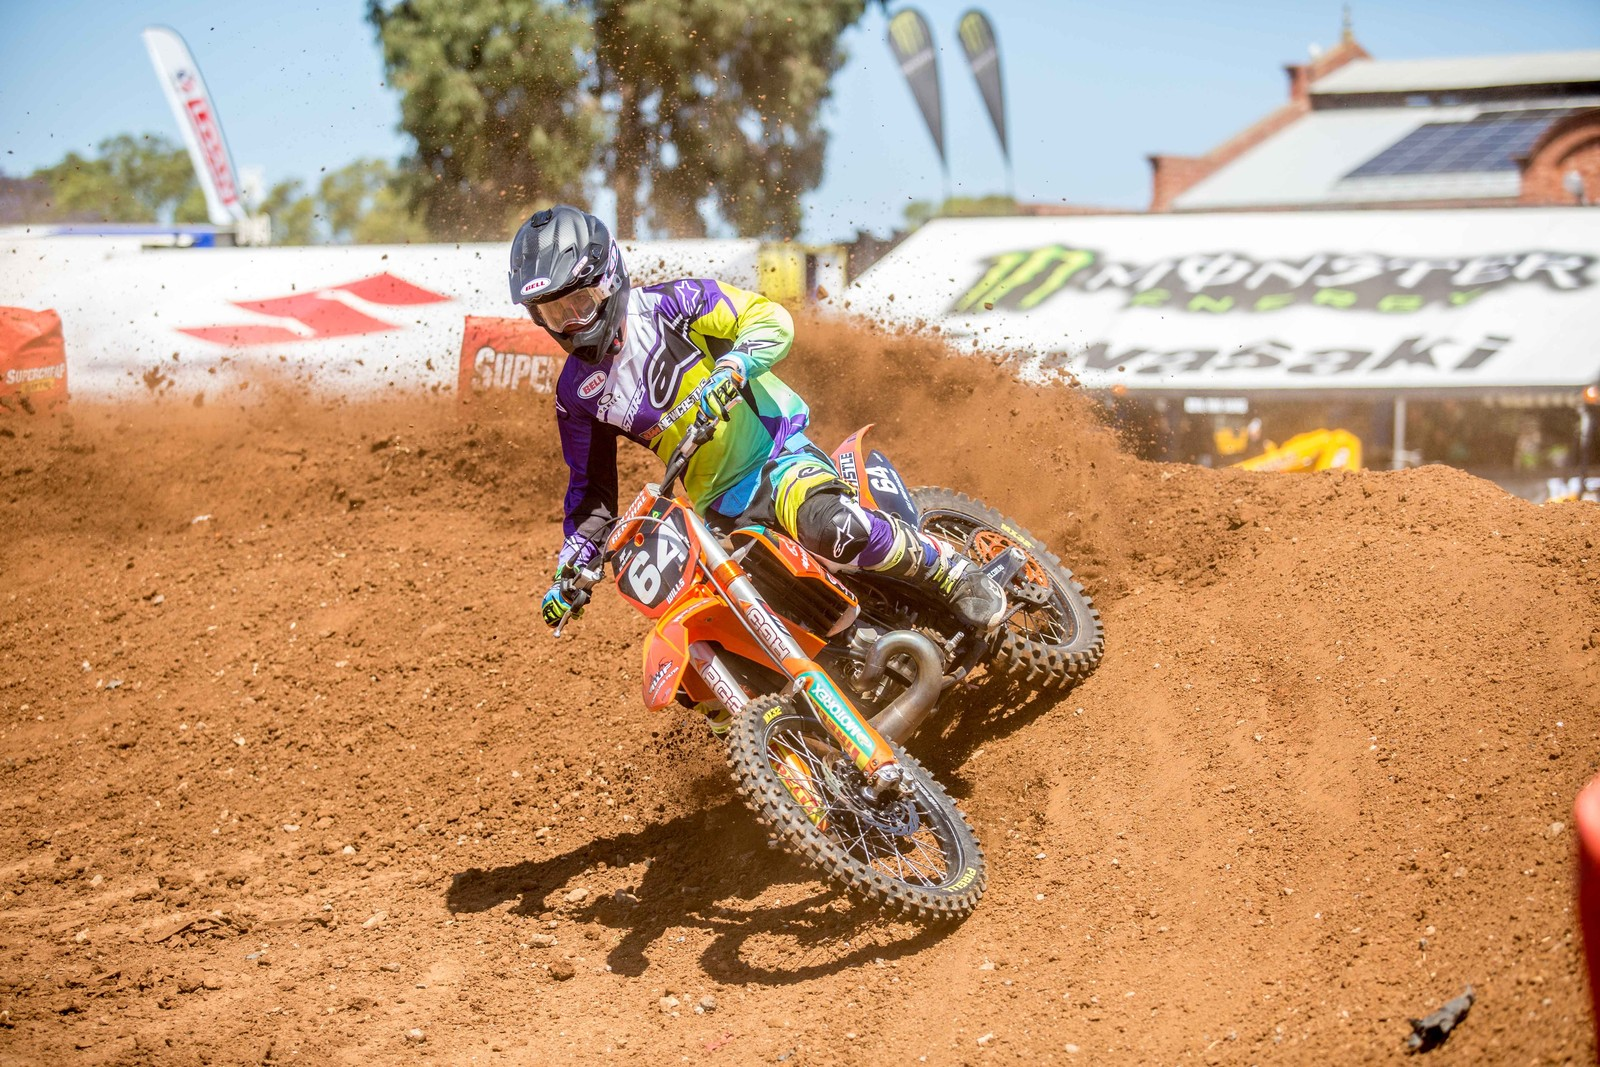 Dylan Wills - Photo Blast: Australian Supercross Championship from Adelaide - Motocross Pictures - Vital MX